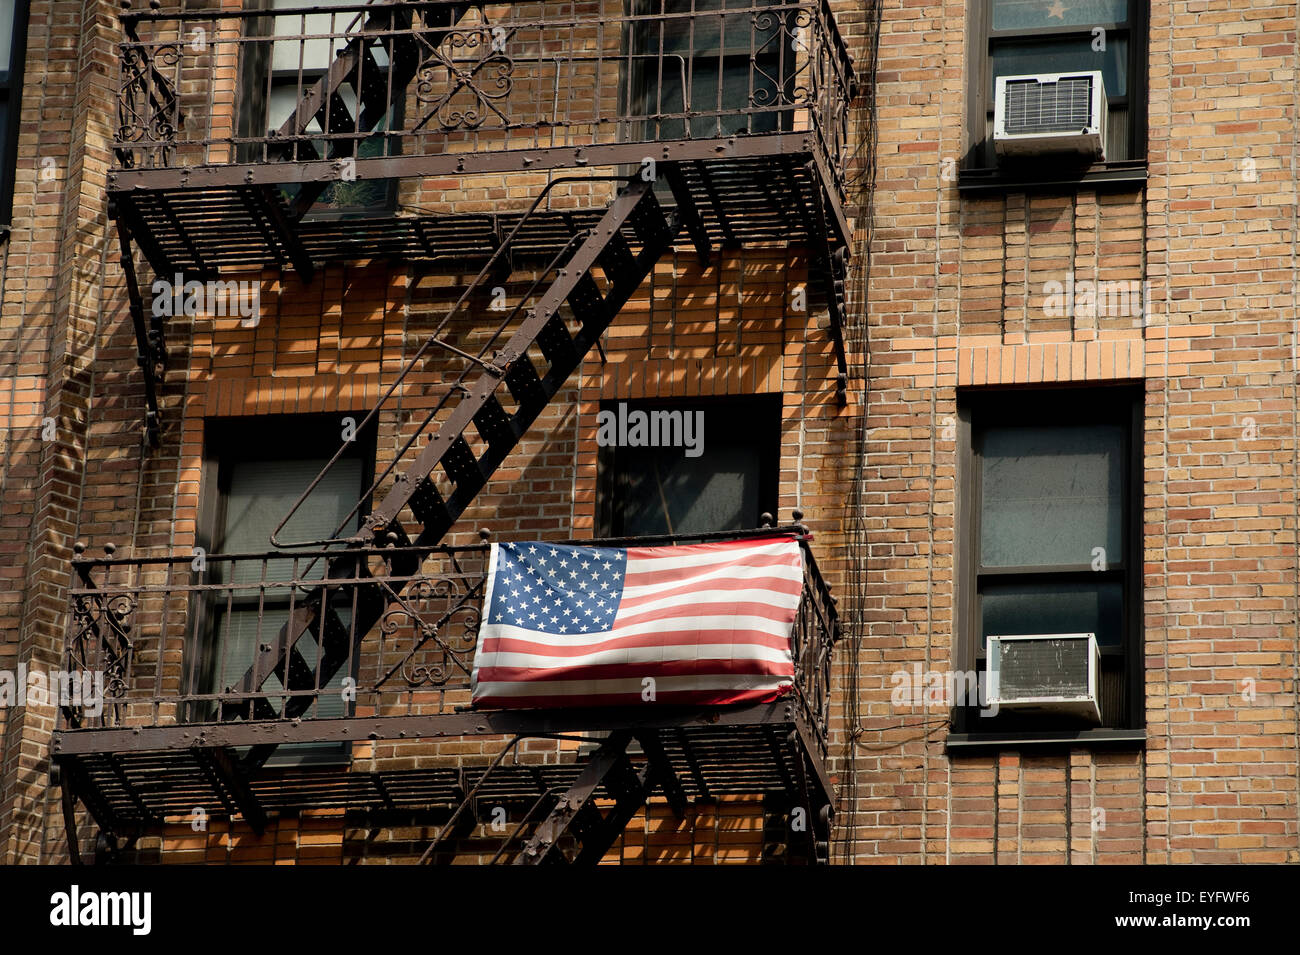 American Flag Outside An Apartments Building In Chelsea, Manhattan, New York,  Usa